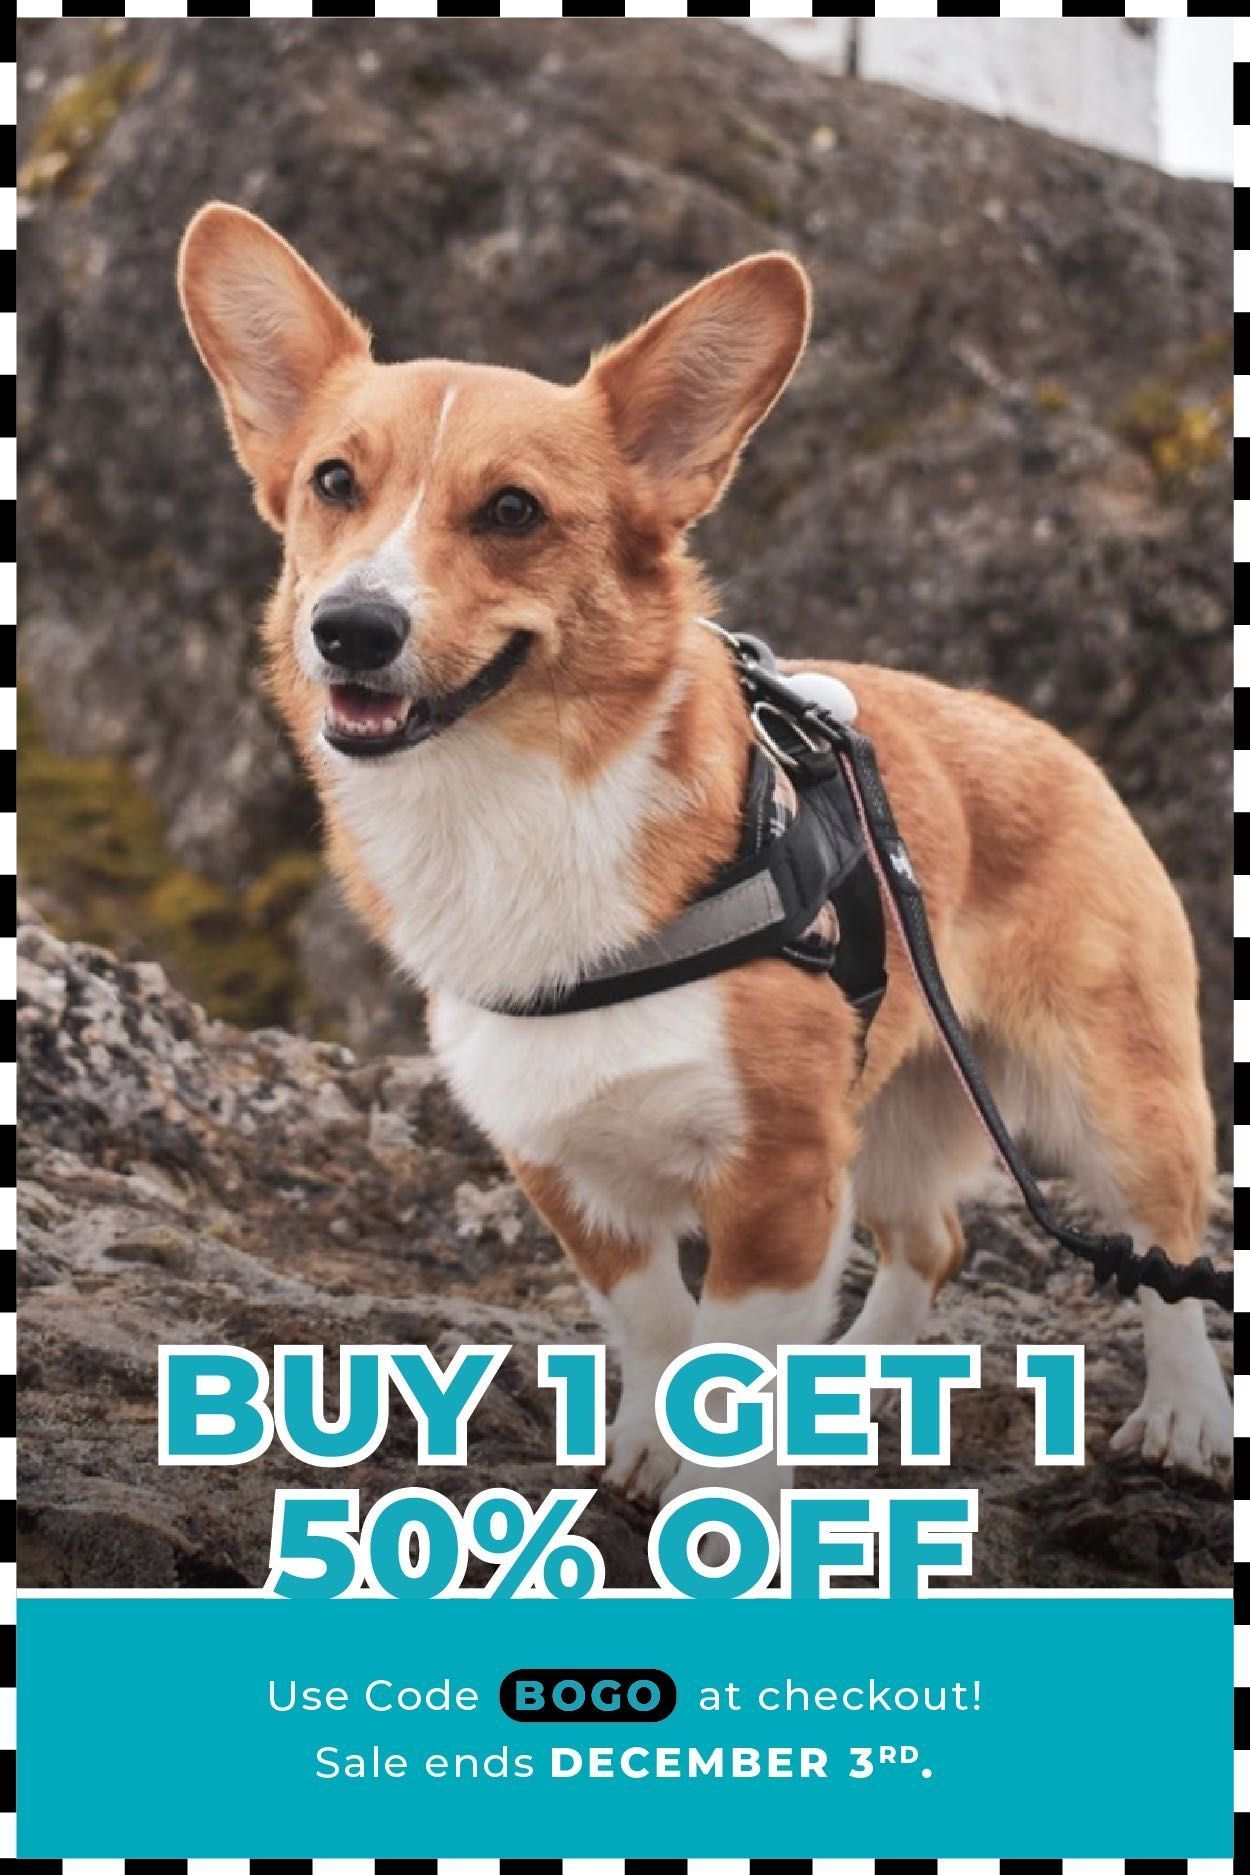 Every purchase helps a rescue dog in need buy two